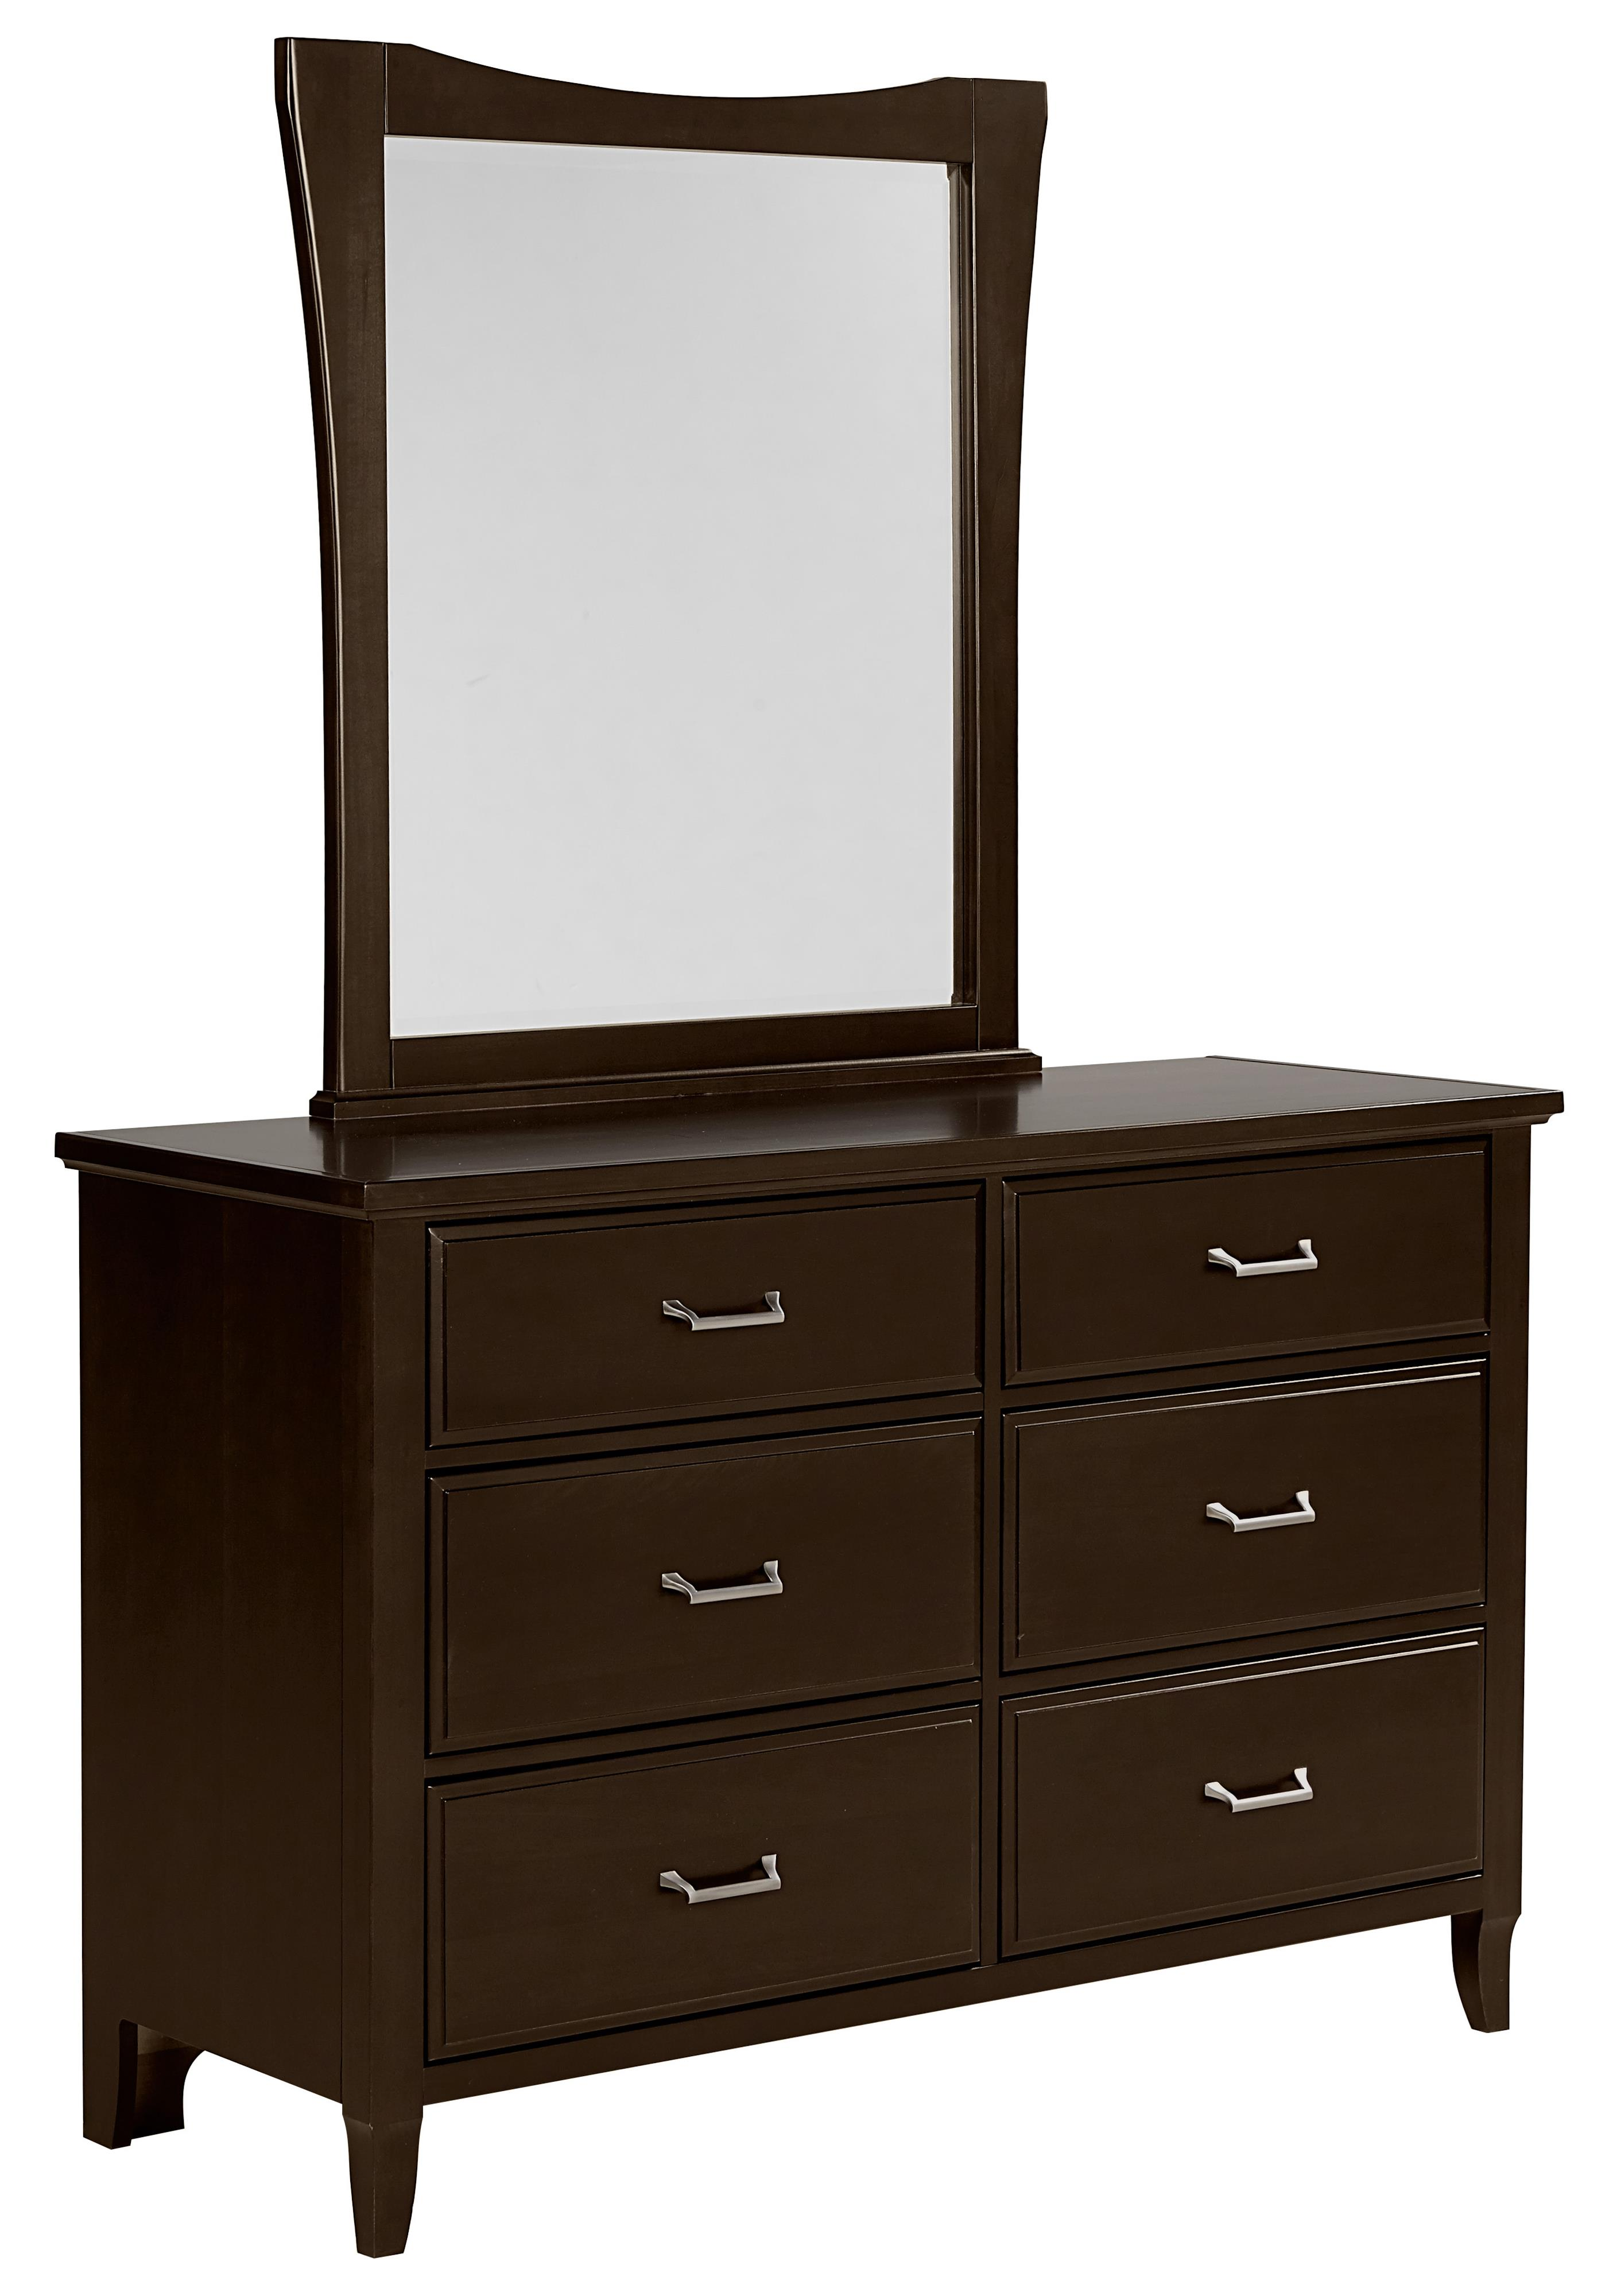 Vaughan Bassett Commentary Dresser - 6 drawers & Youth Wing Mirror - Item Number: 390-001+443